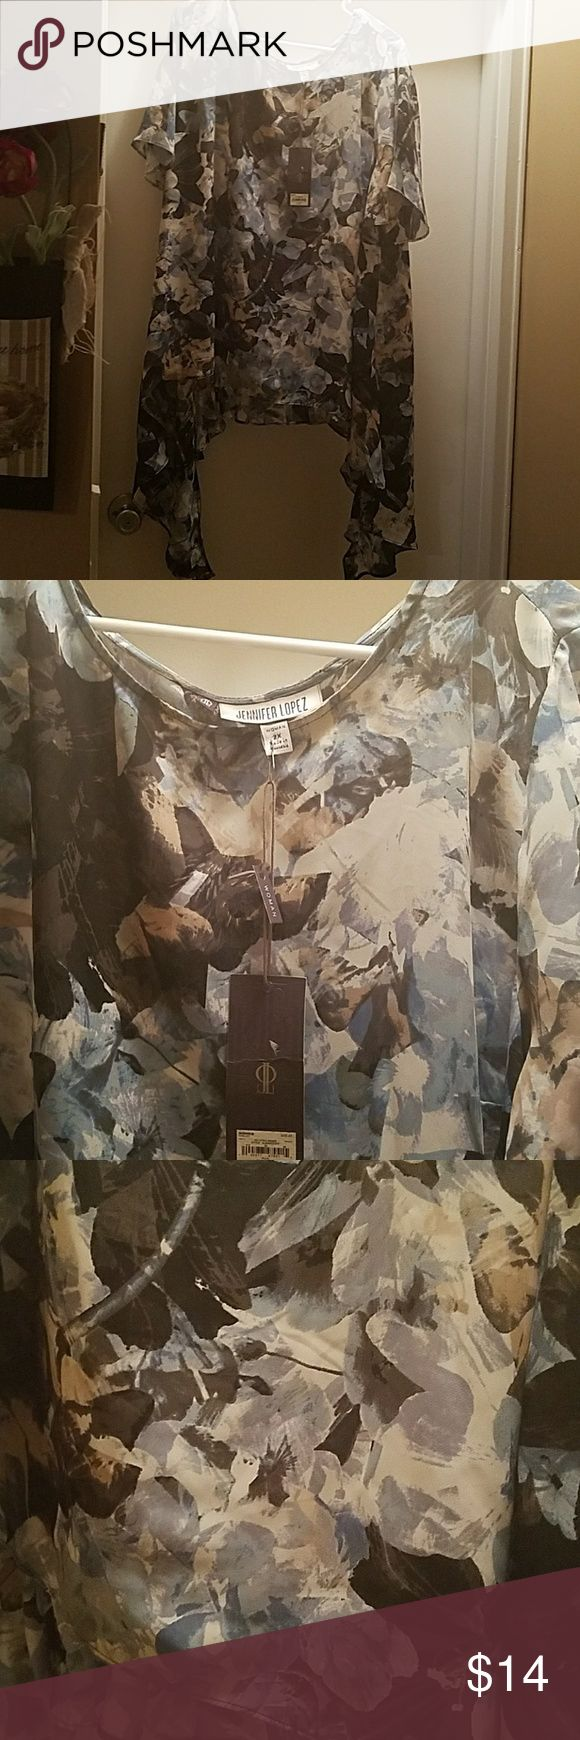 ANOTHER BEAUTIFUL BLOUSE CAN'T SAY ENOUGH ABOUT RHIS BLOUSE FROM JENNIFER LOPEZ SIZE 2X VERY FLOWY THIS BLOUSE WOULD BE GREAT FOR A CRUISE, OR VACATION ON A ISLAND, OR ANY TIME Jennifer Lopez Tops Blouses